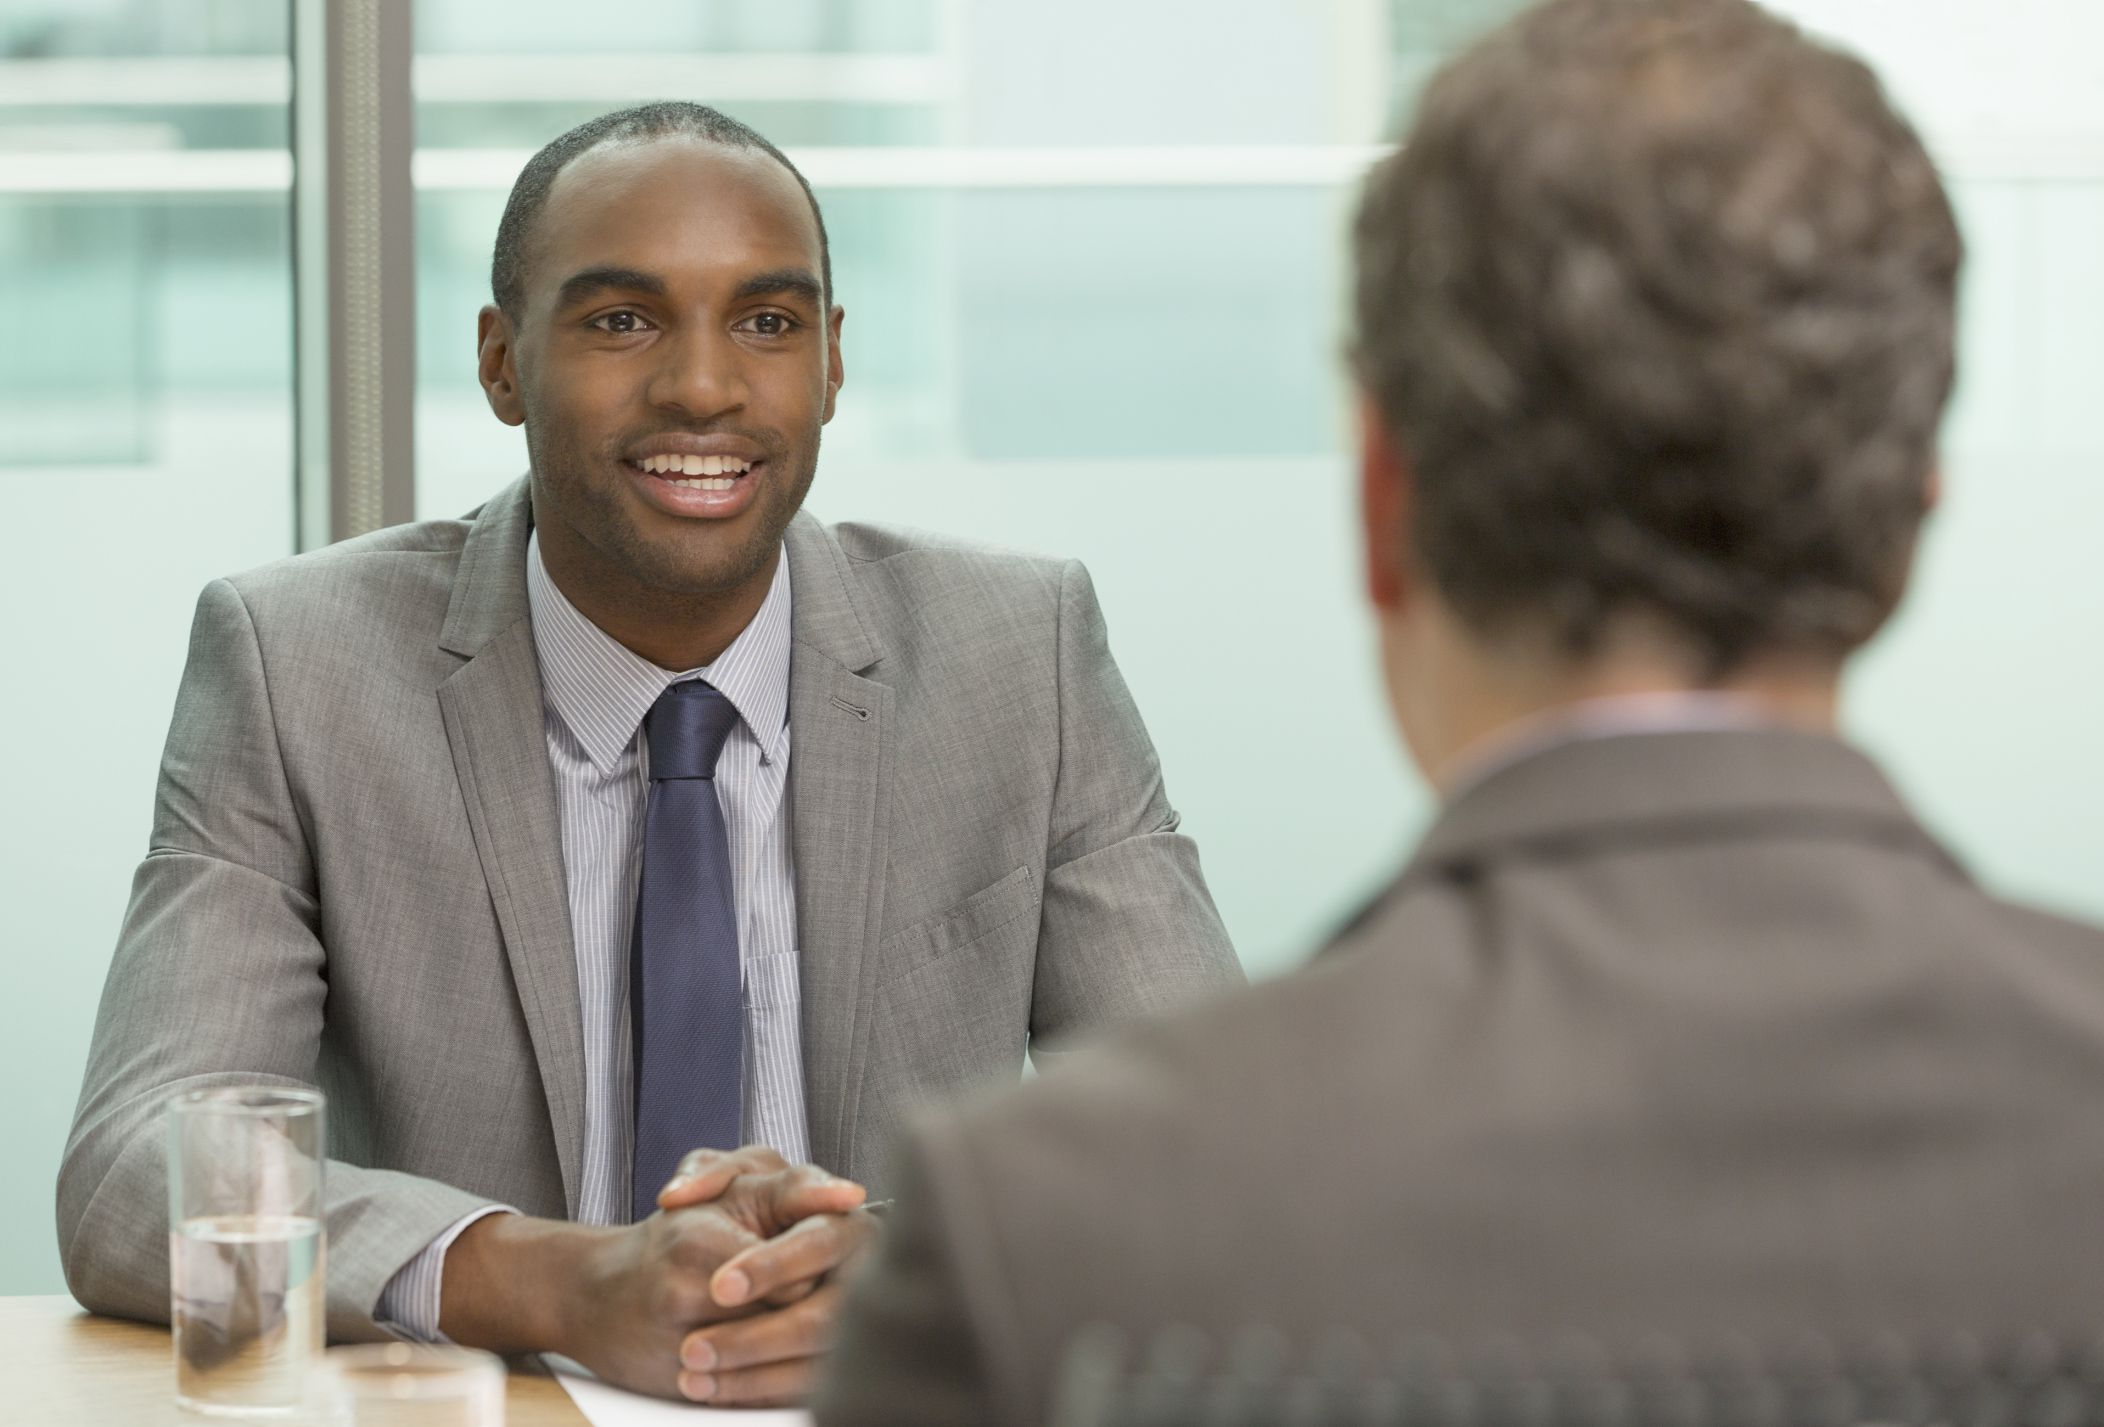 12 tips for connecting with your interviewer - Facing An Interview Tips And Techniques